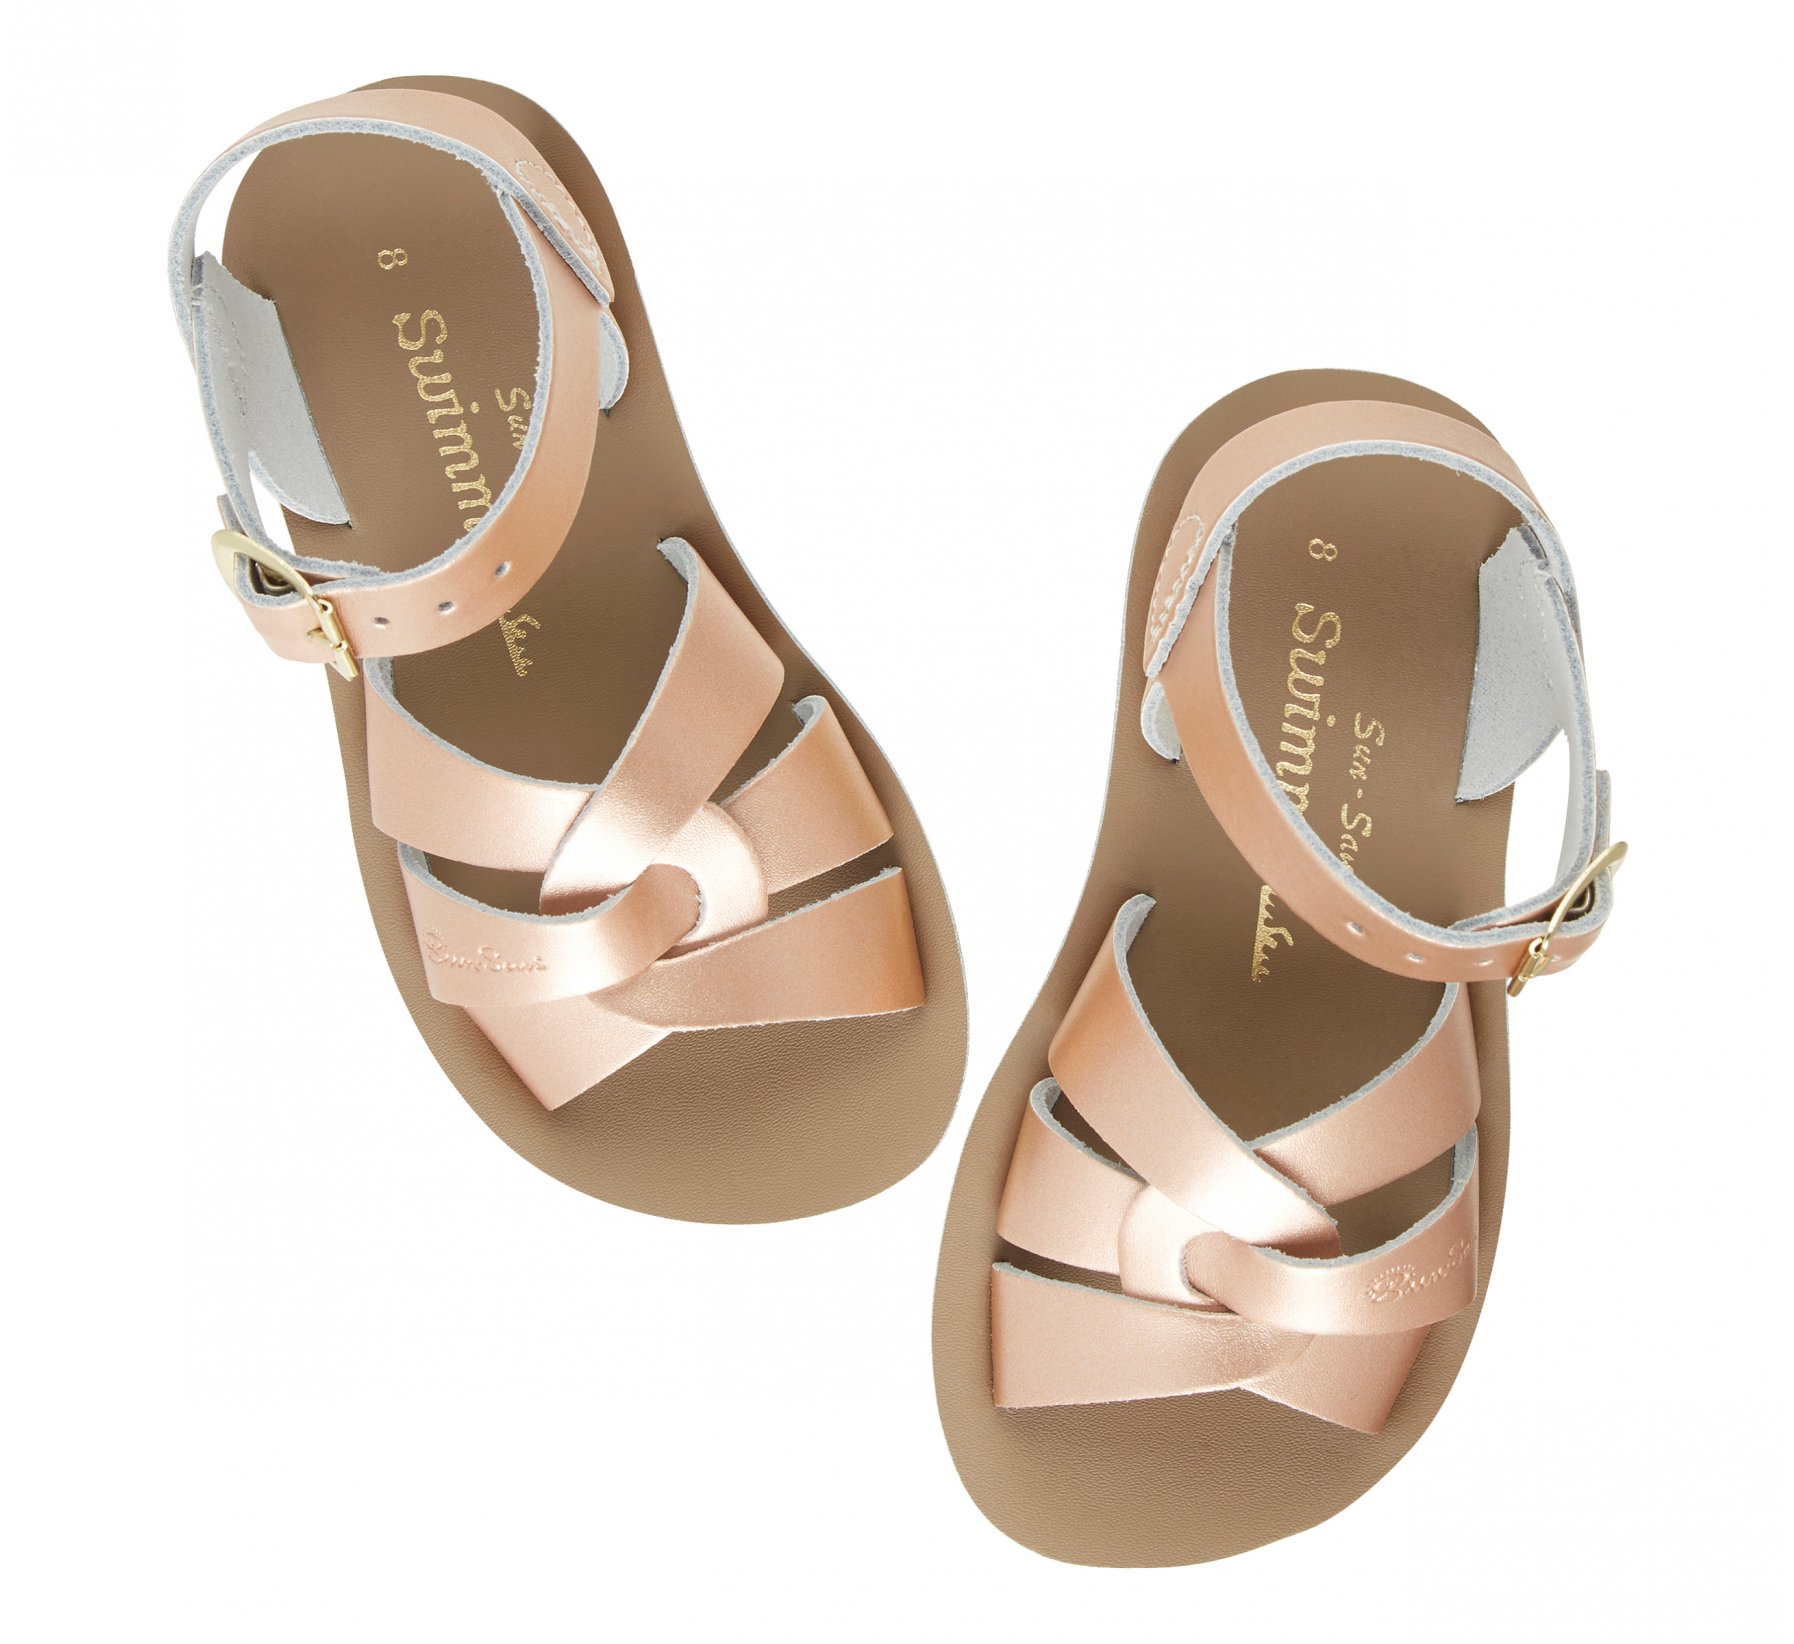 Swimmer in Roségold - Salt Water Sandals